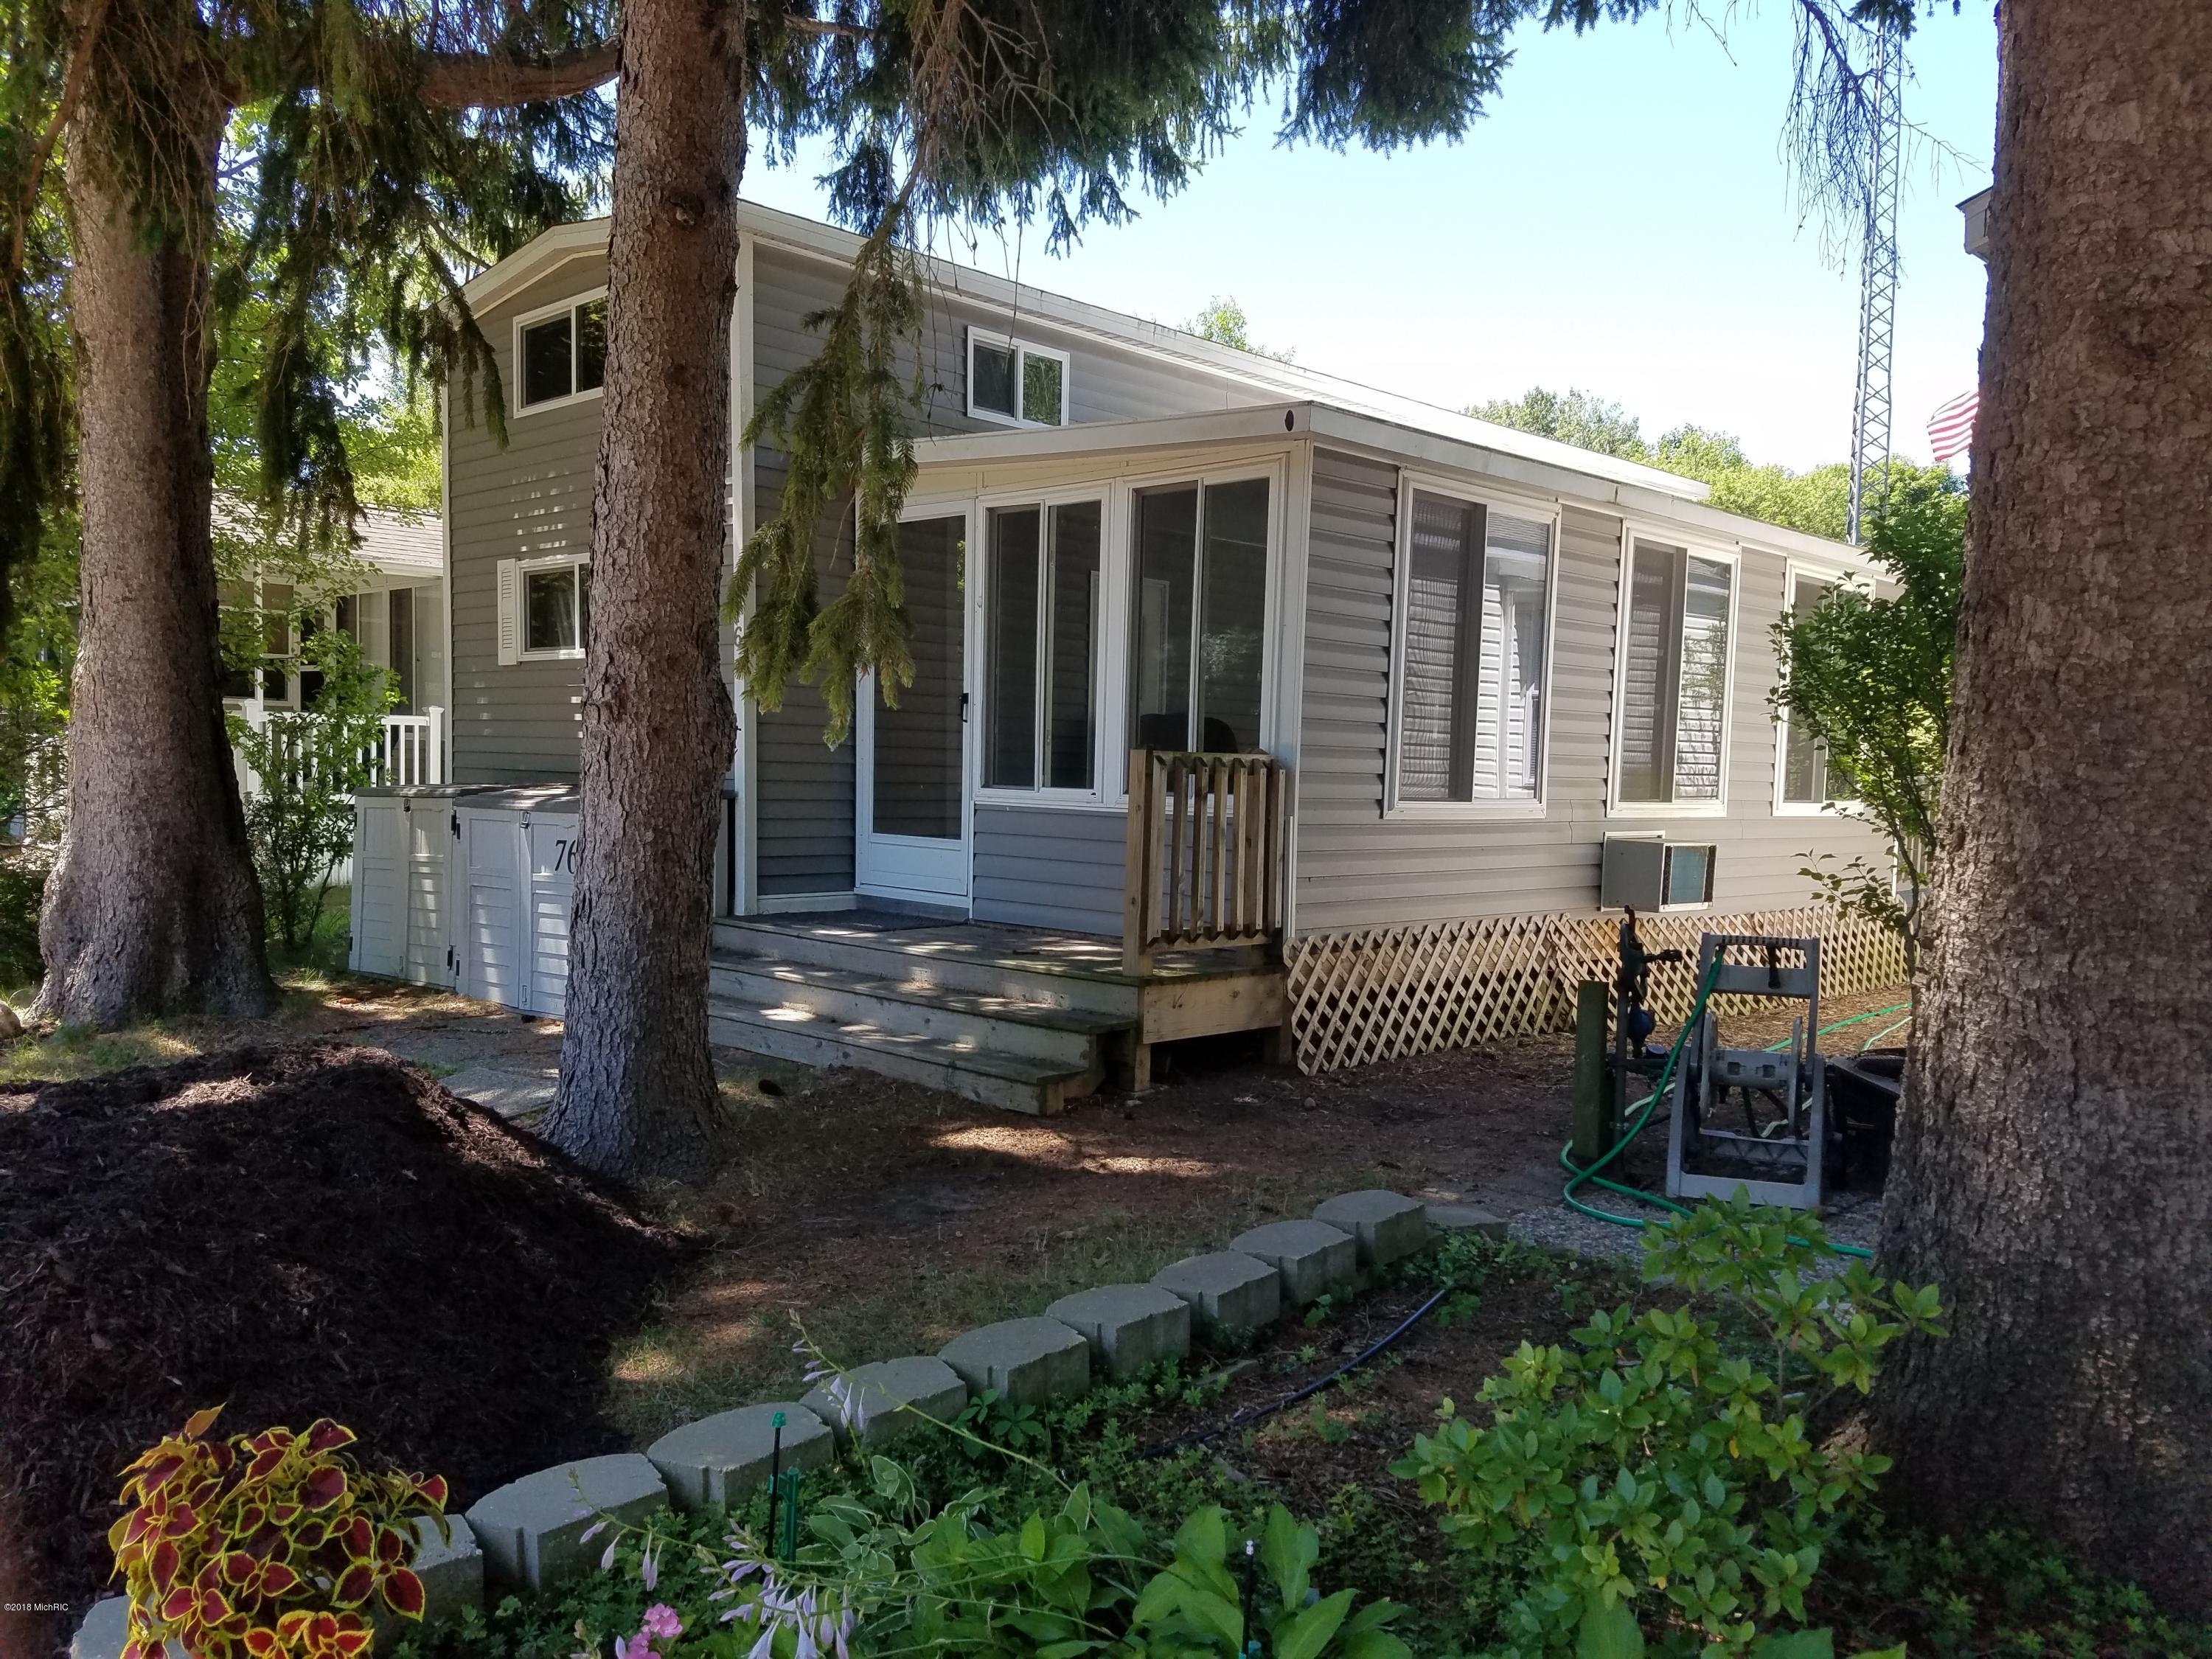 Photo for 6473 Blue Star Highway, Unit Lot 76, Saugatuck, MI 49453 (MLS # 18034835)